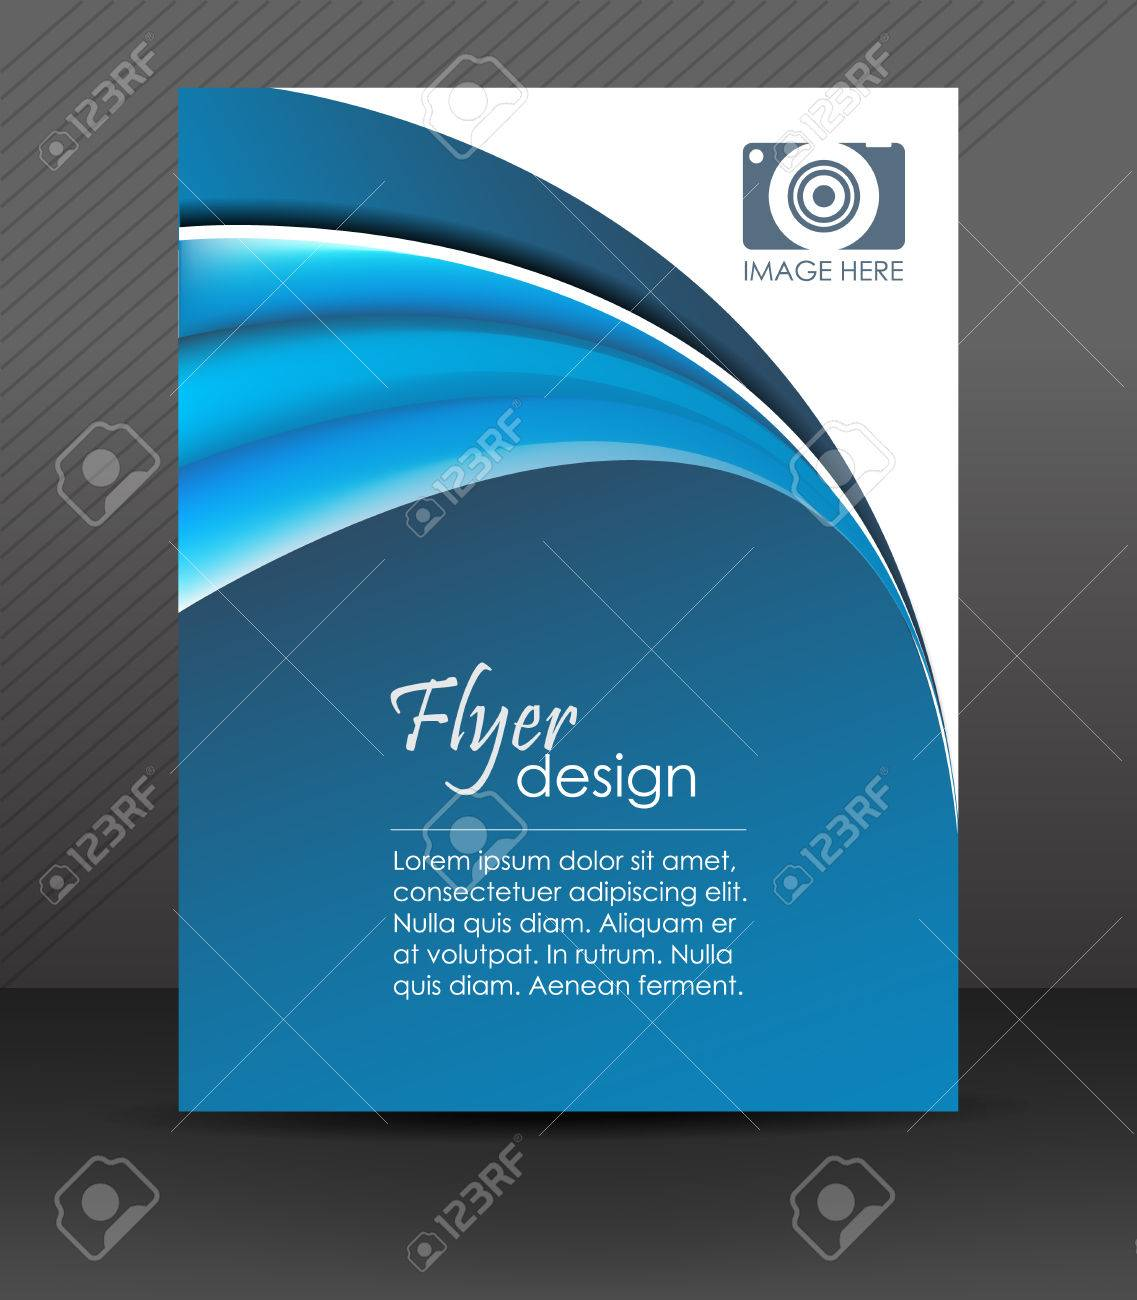 professional business flyer template brochure cover design professional business flyer template brochure cover design or corporate banner stock vector 32163317